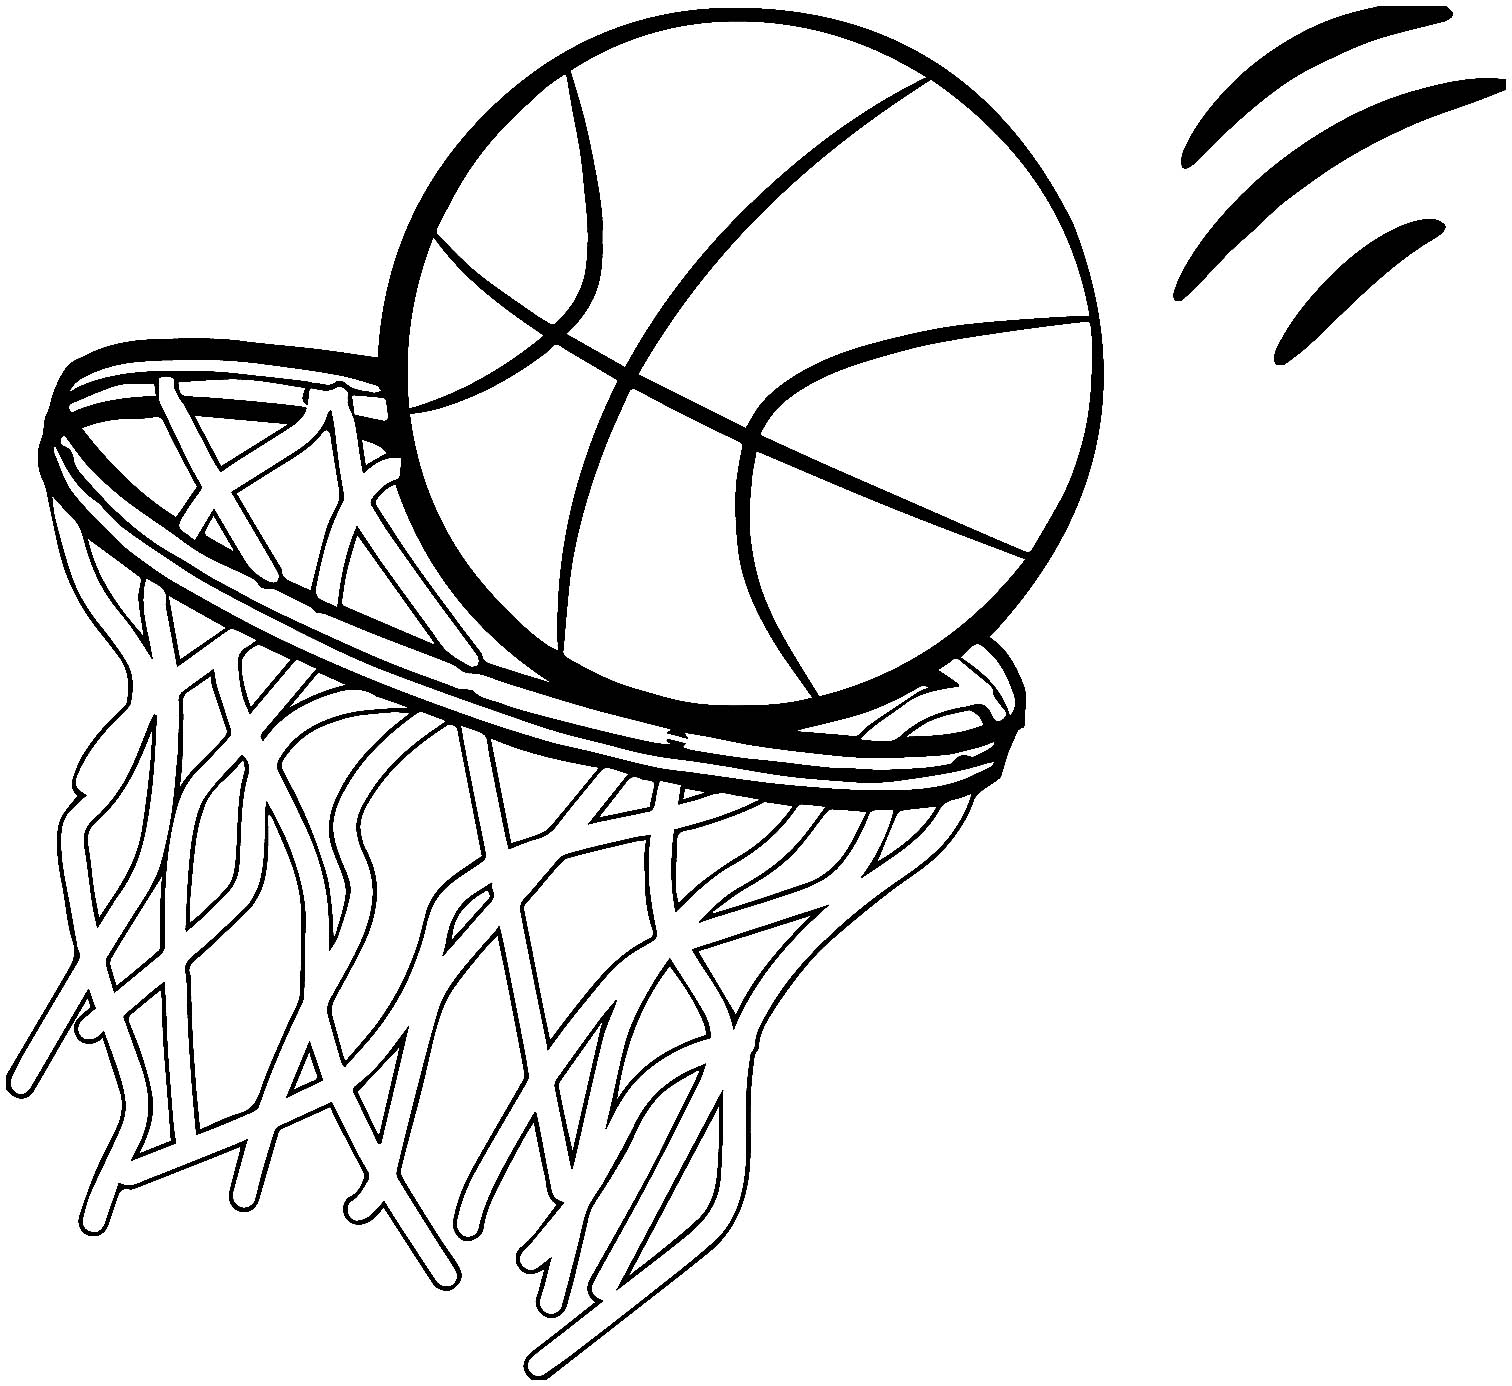 basketball pictures to color basketball coloring pages for adults coloring home to basketball color pictures